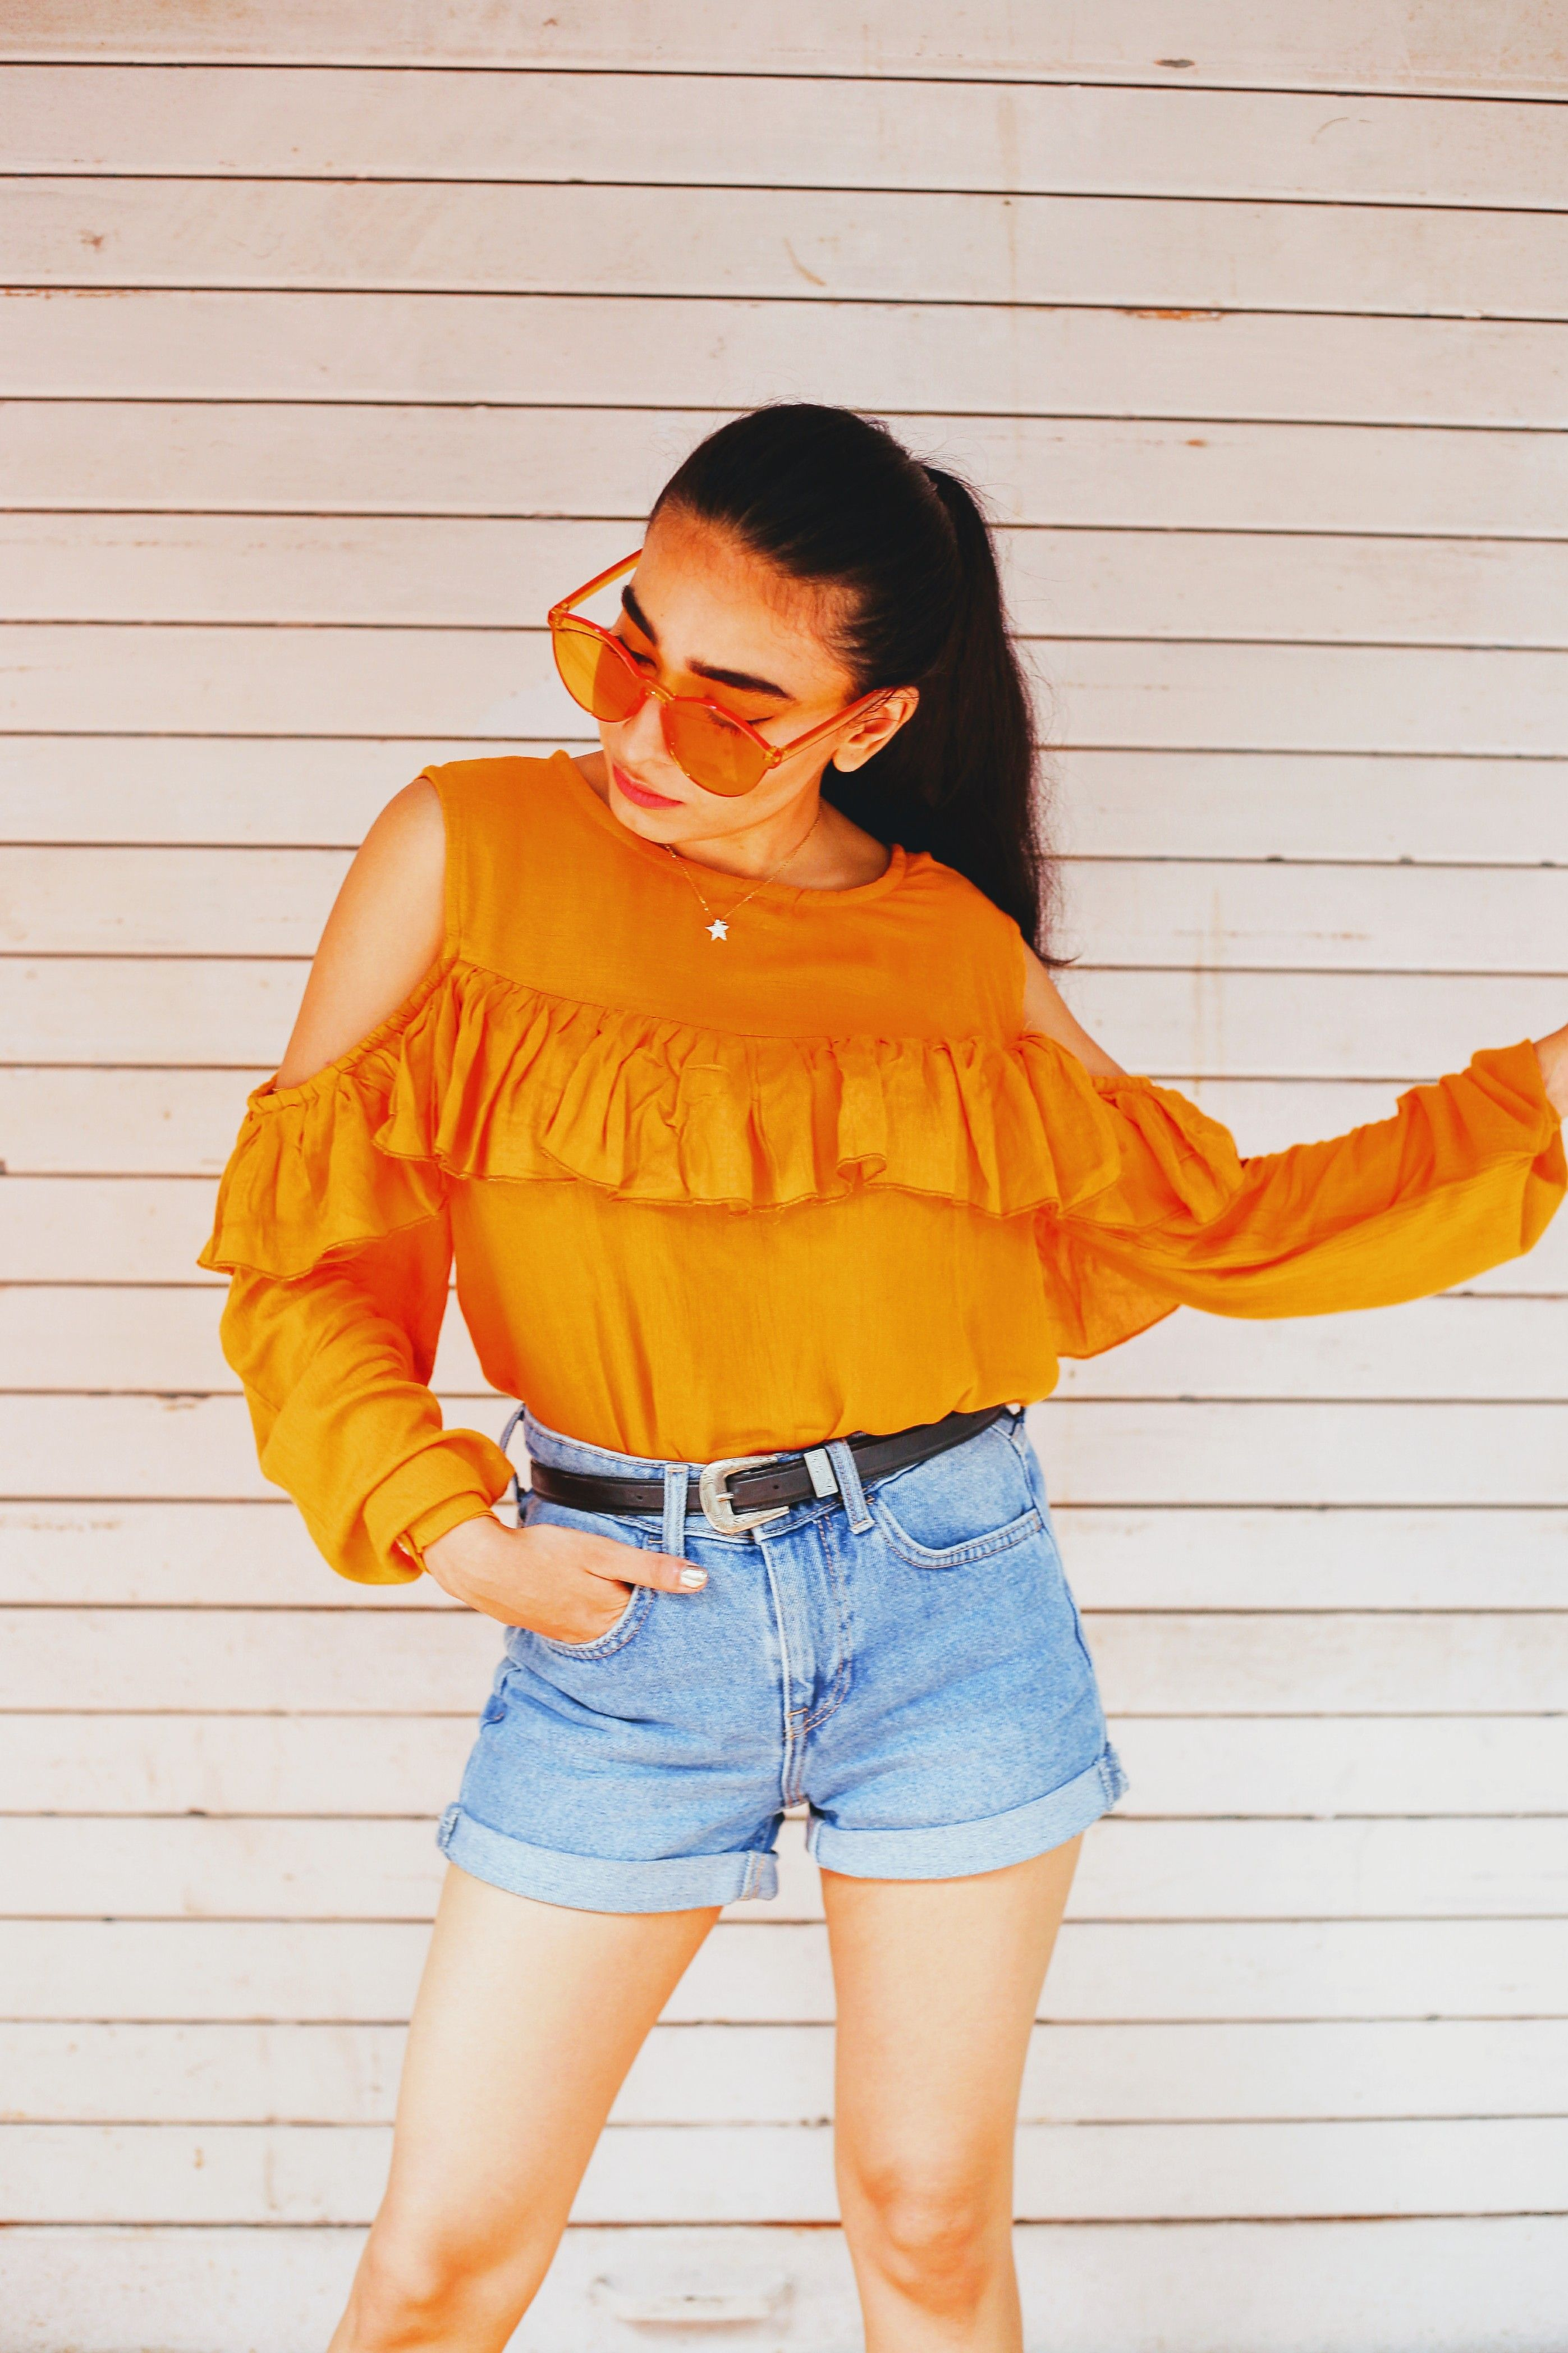 25ab026e6a21 candy sunglasses, yellow shades, yellow sunnies, bellofox sunglasses,  yellow fever, mustard top, casual street style, indian fashion blogger,  street style, ...